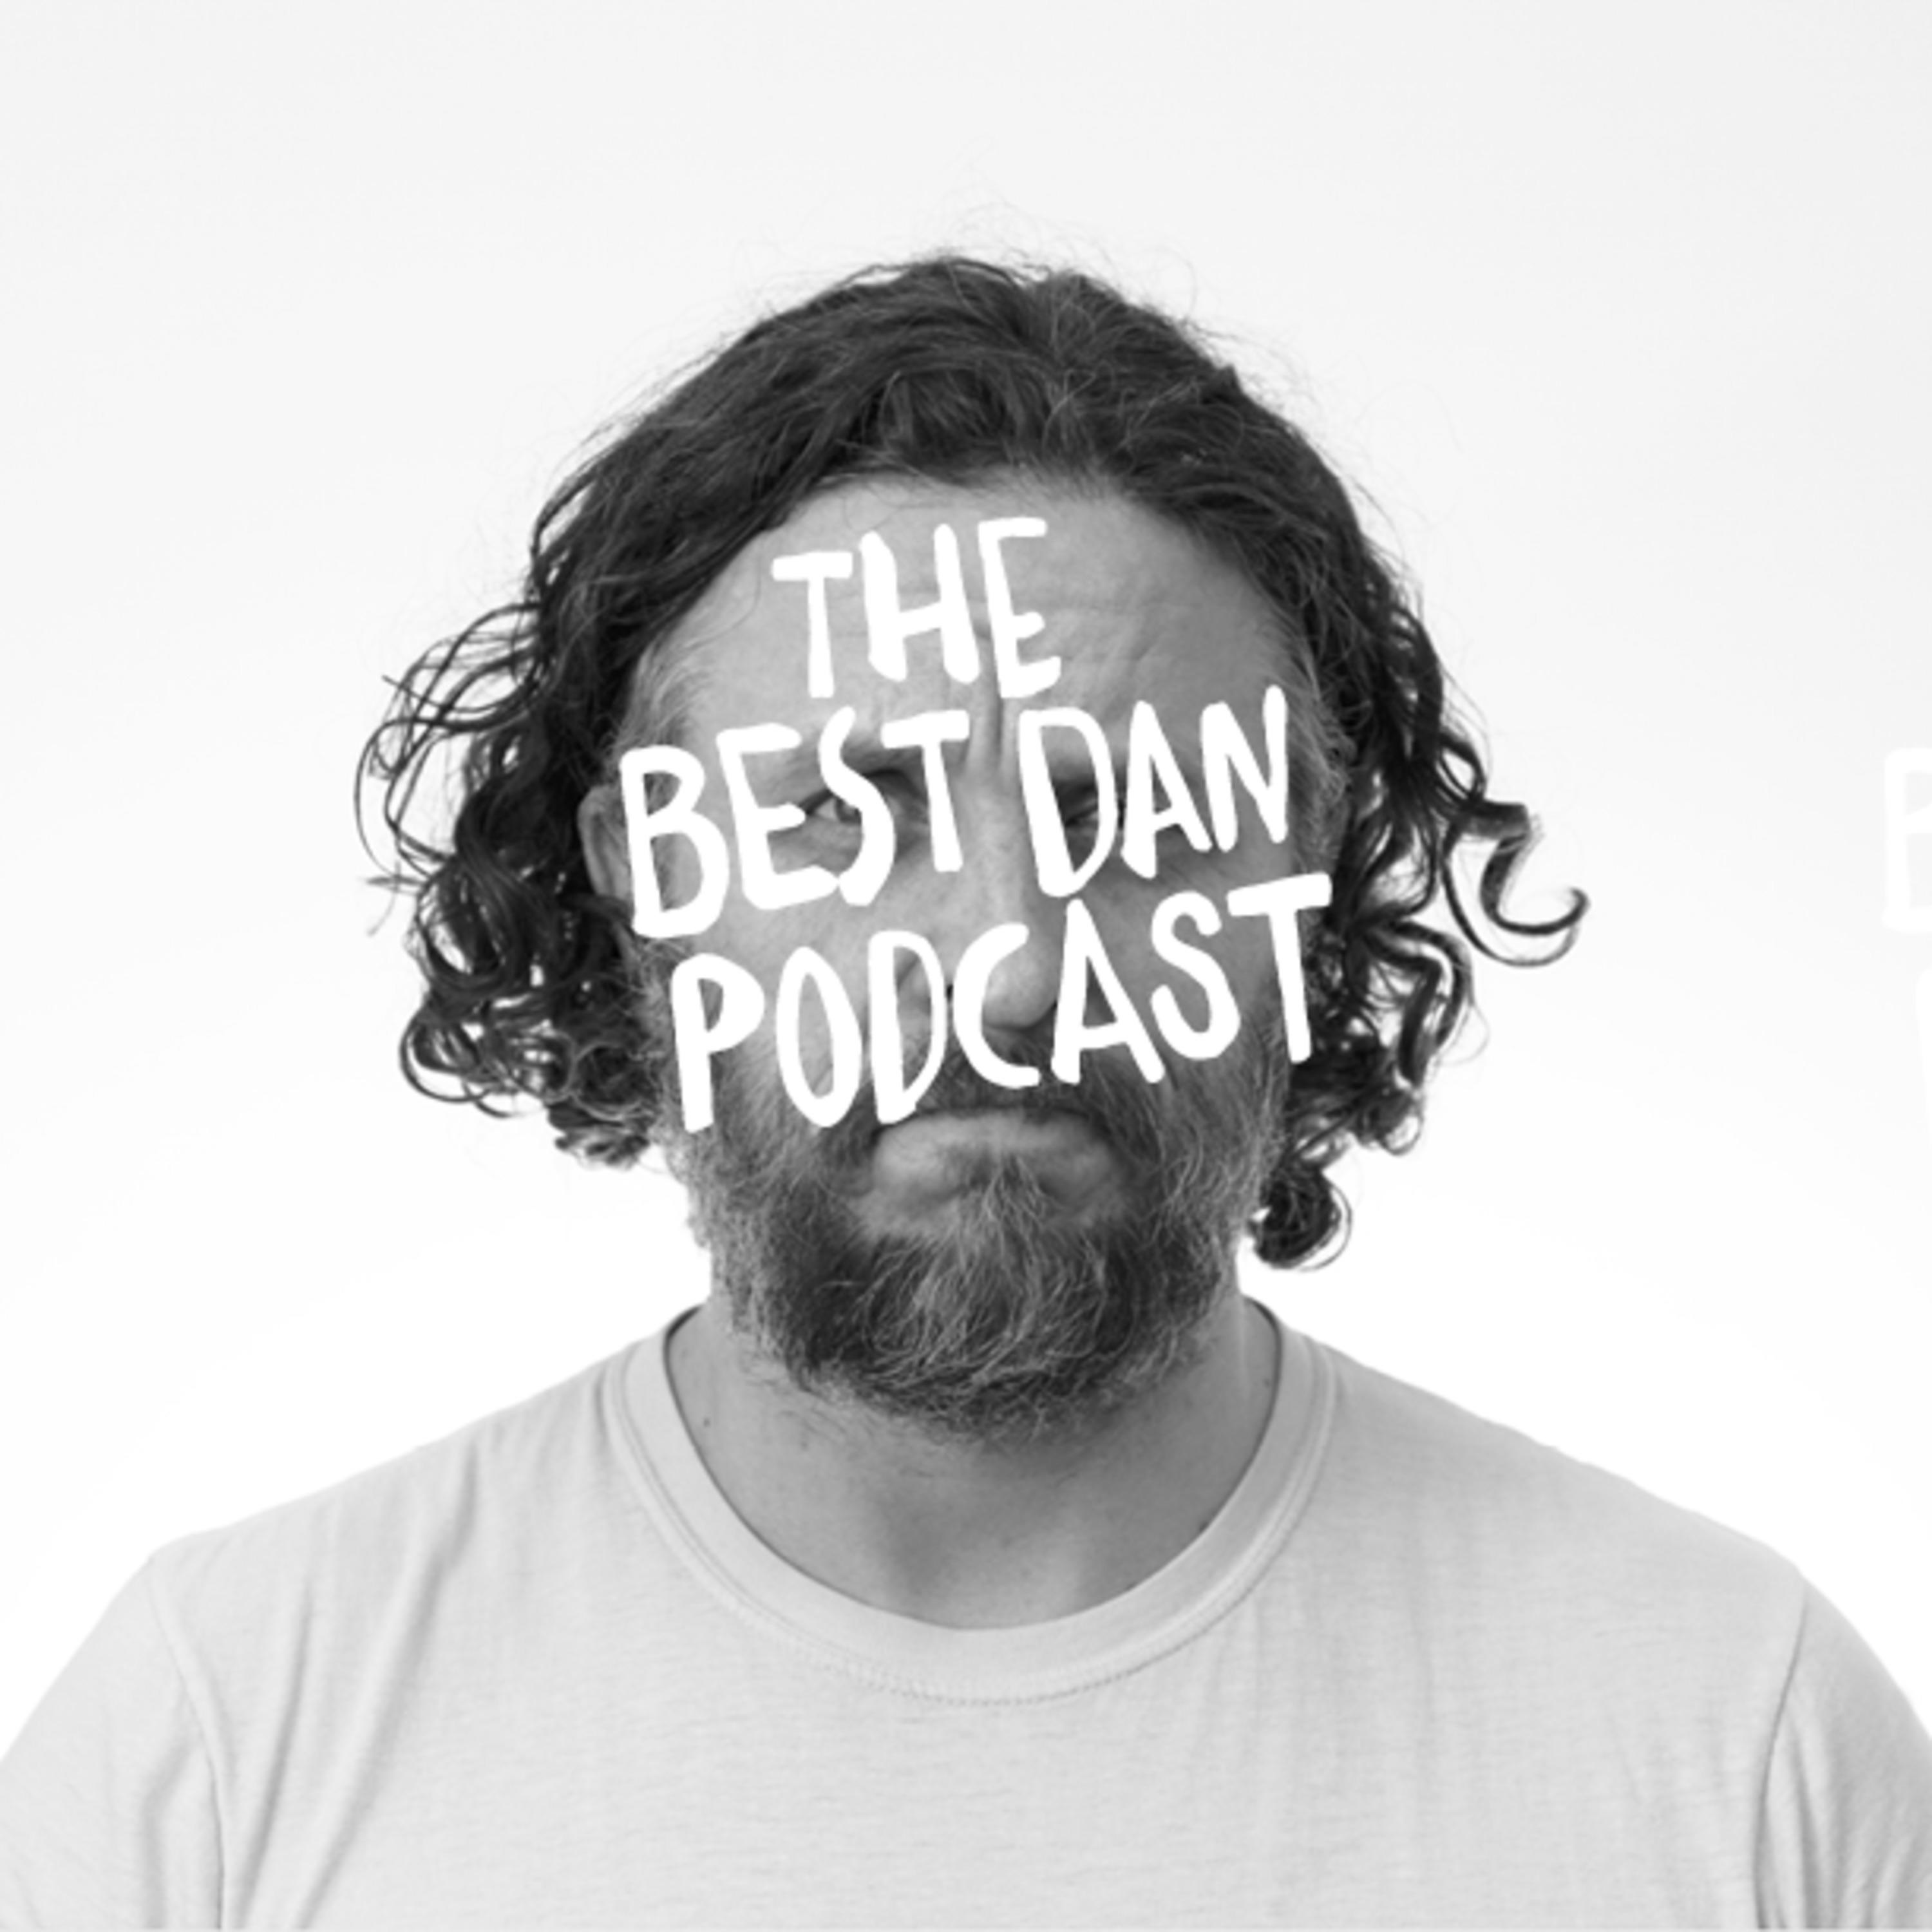 The Best Dan Podcast 7 wsg Bruce Edward Walker on Movies